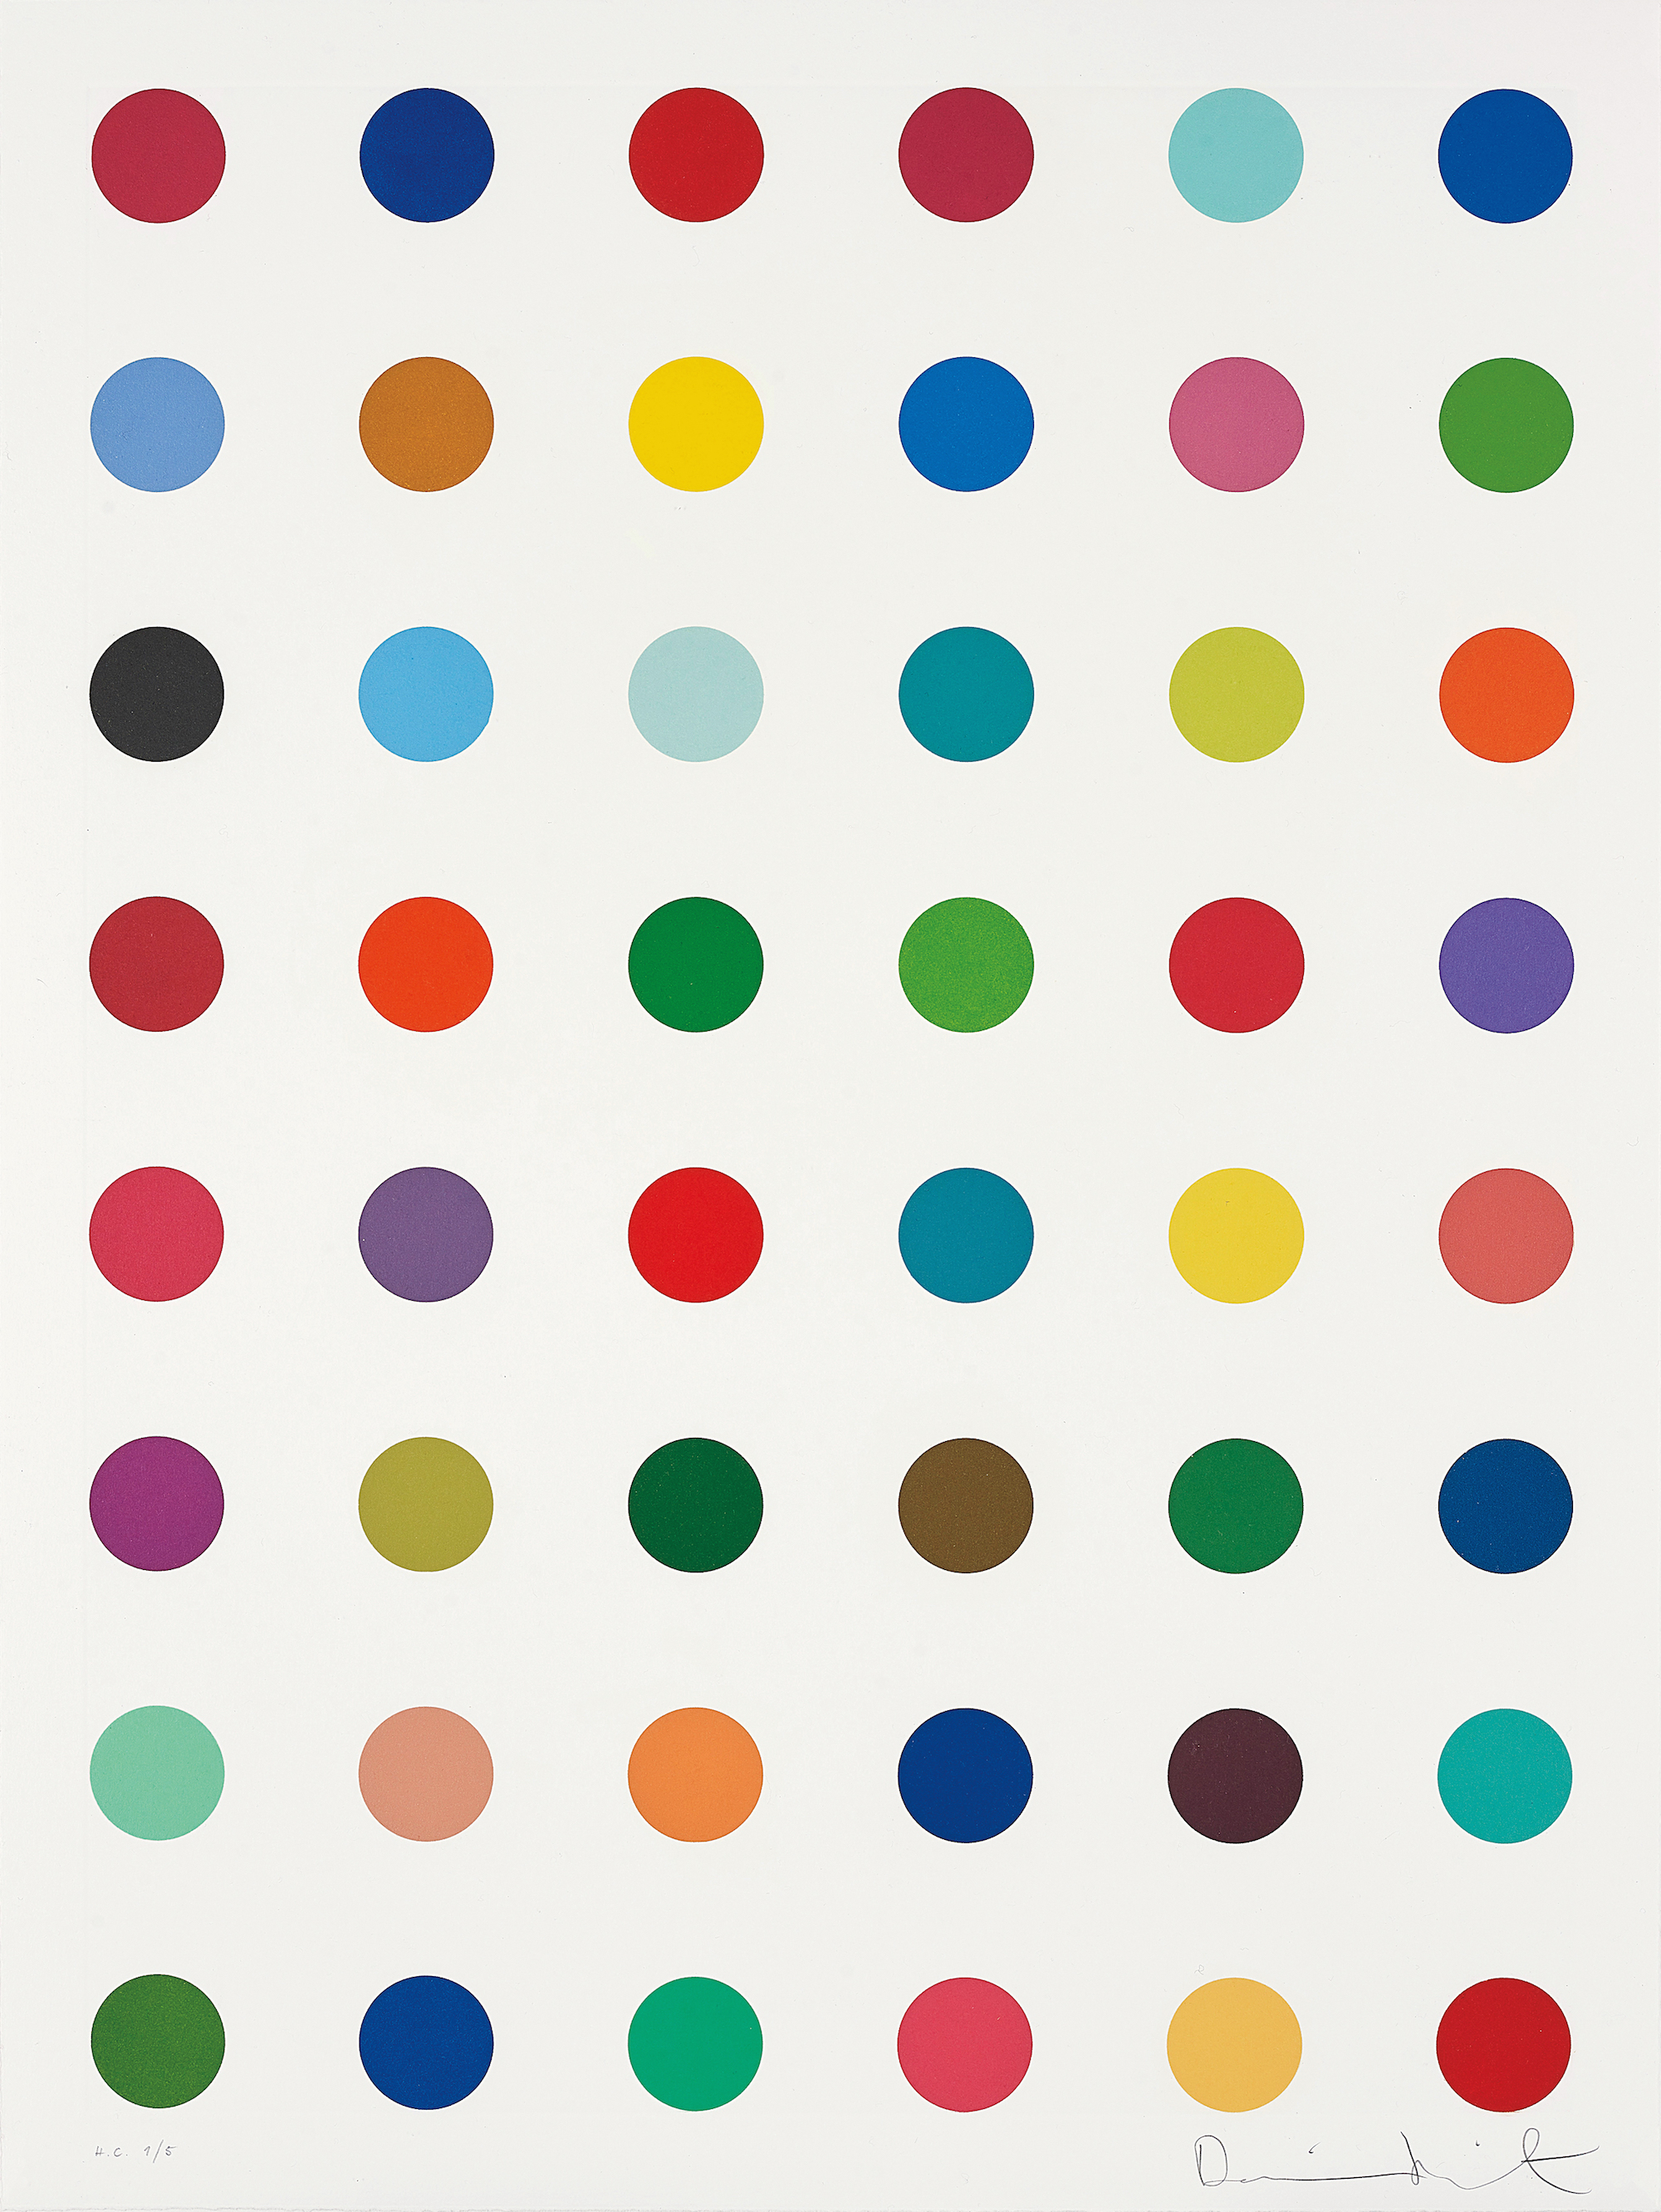 Damien Hirst ,  Untitled , 2007, Etching in colours, on Hahnemühle rag paper, 81.5 x 61.0 cm, edition of 45